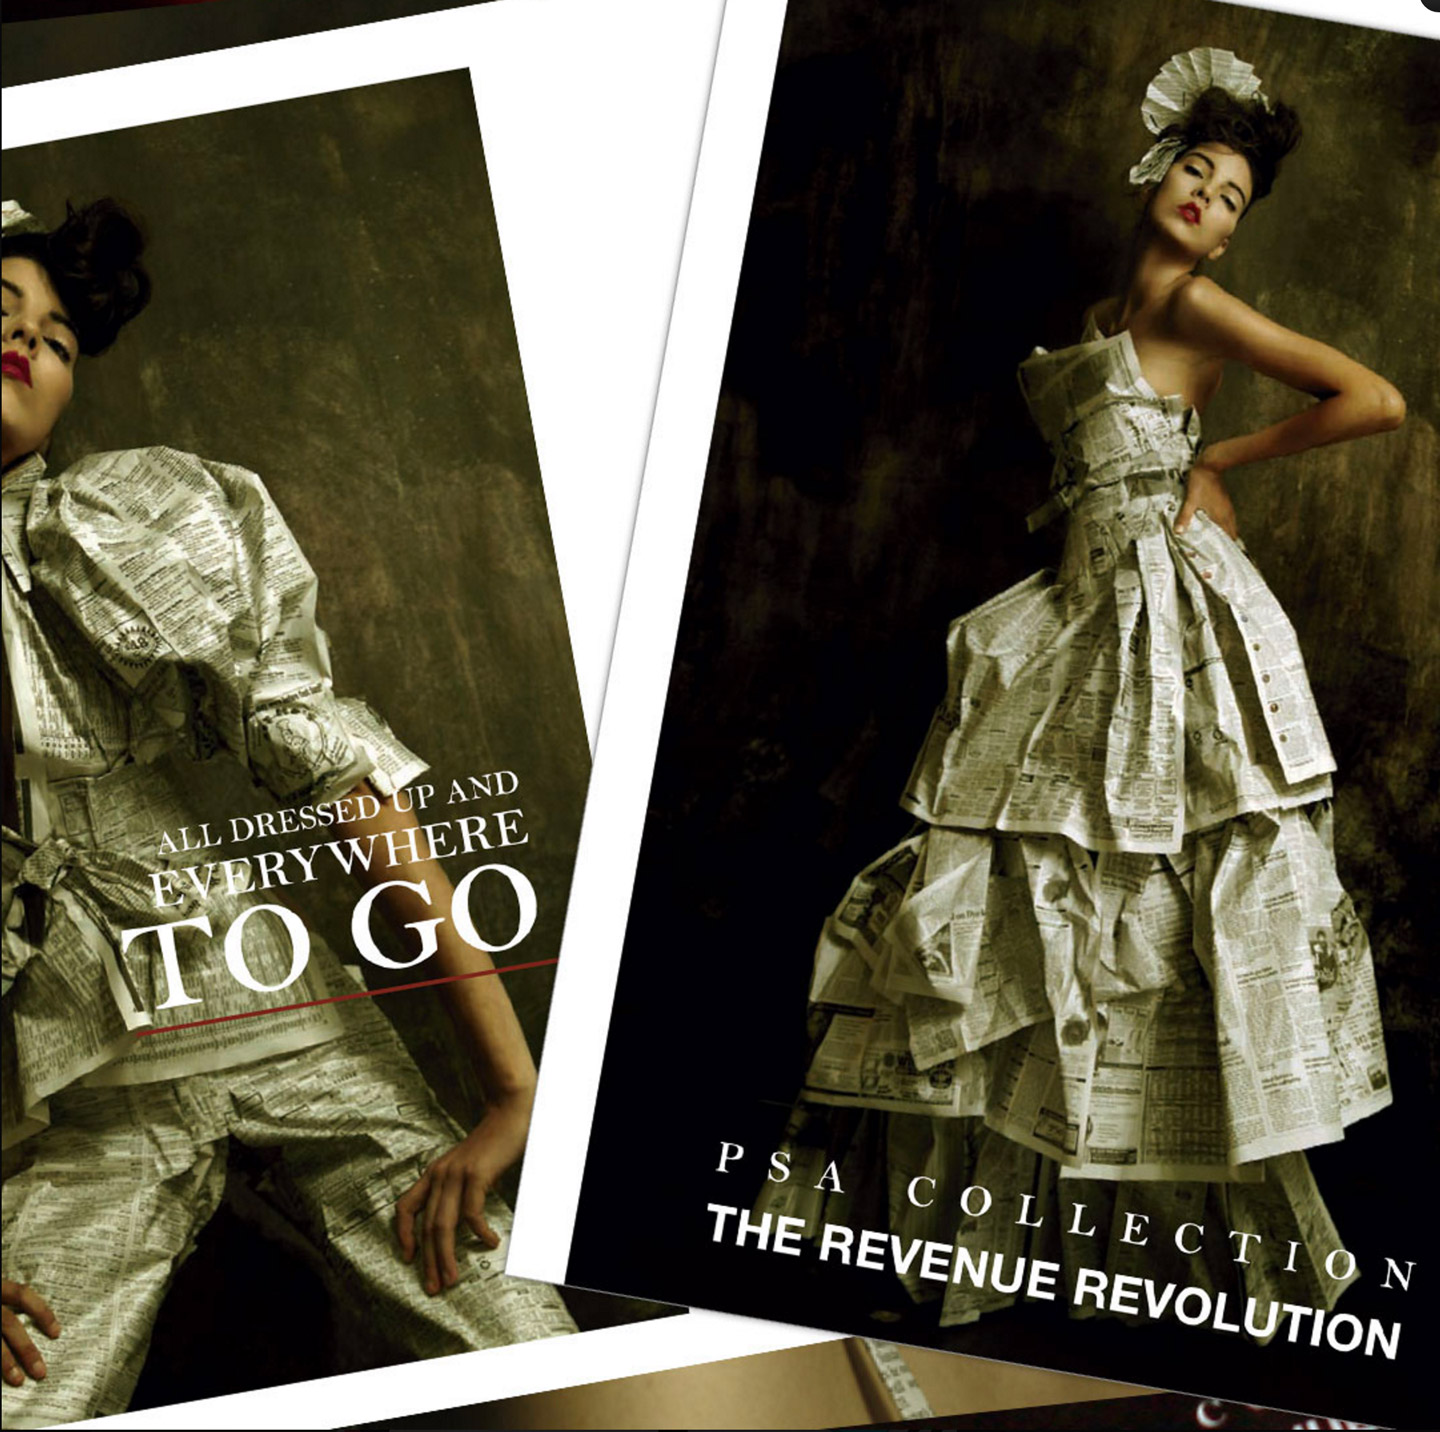 Two posters of women dressed in high-fashion dresses made of newspaper